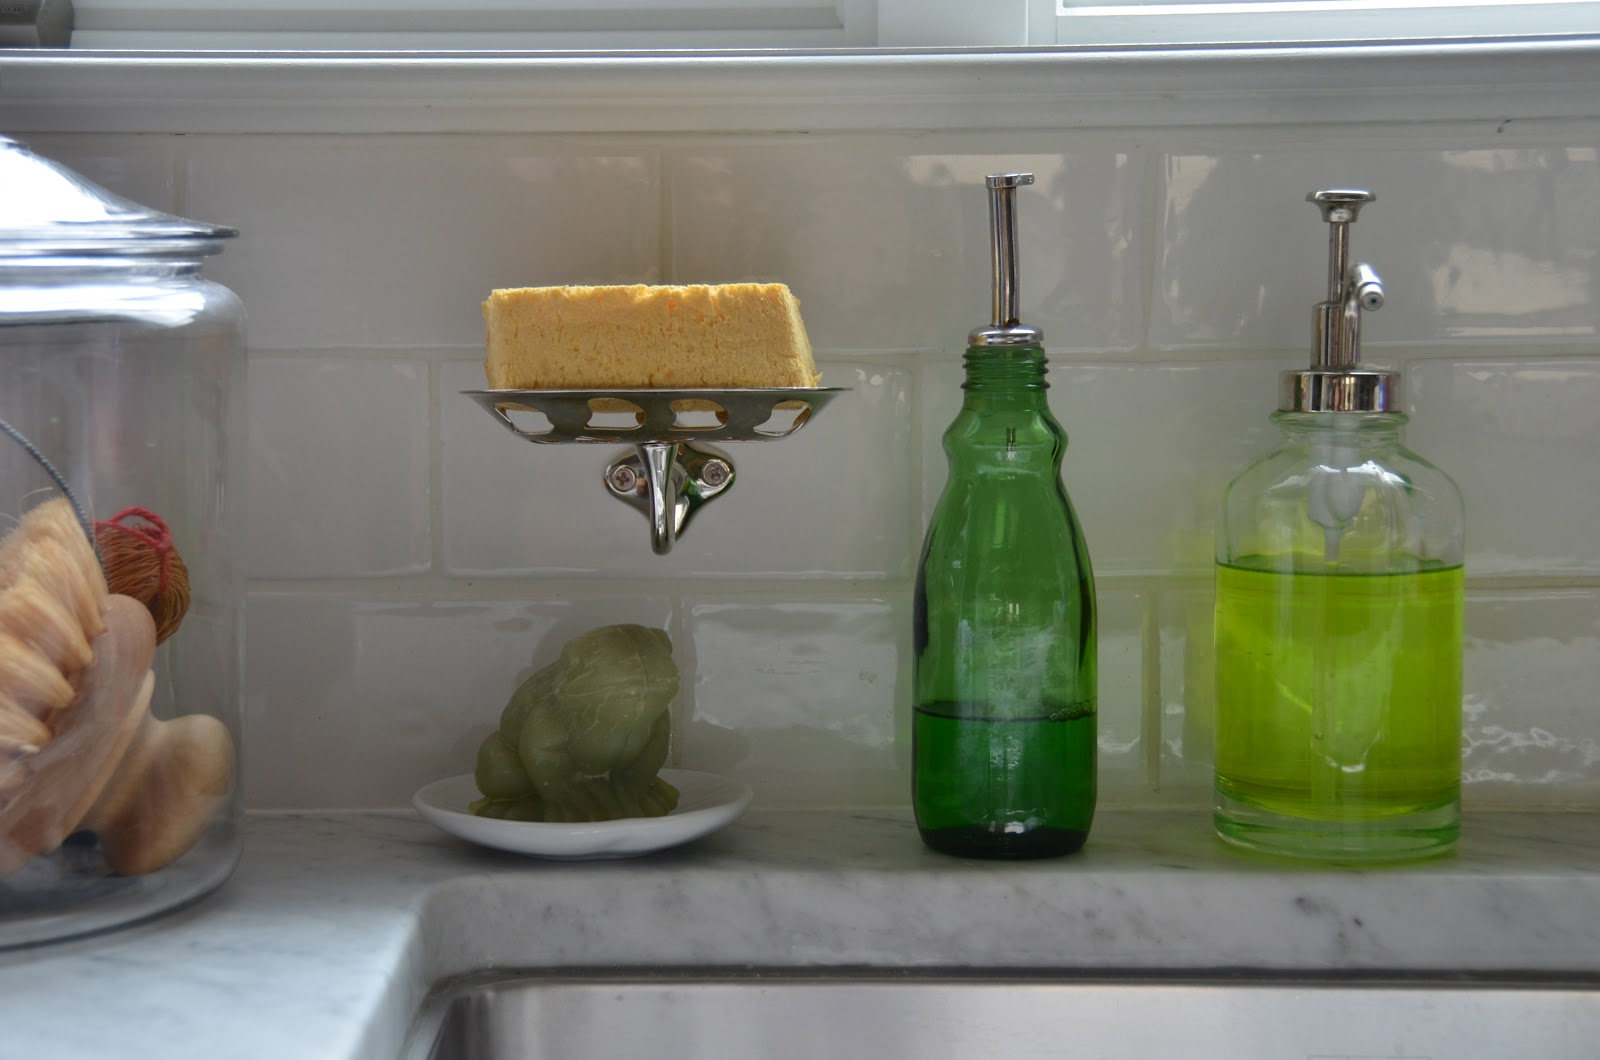 Exceptionnel A Soap Dish For The Sponge